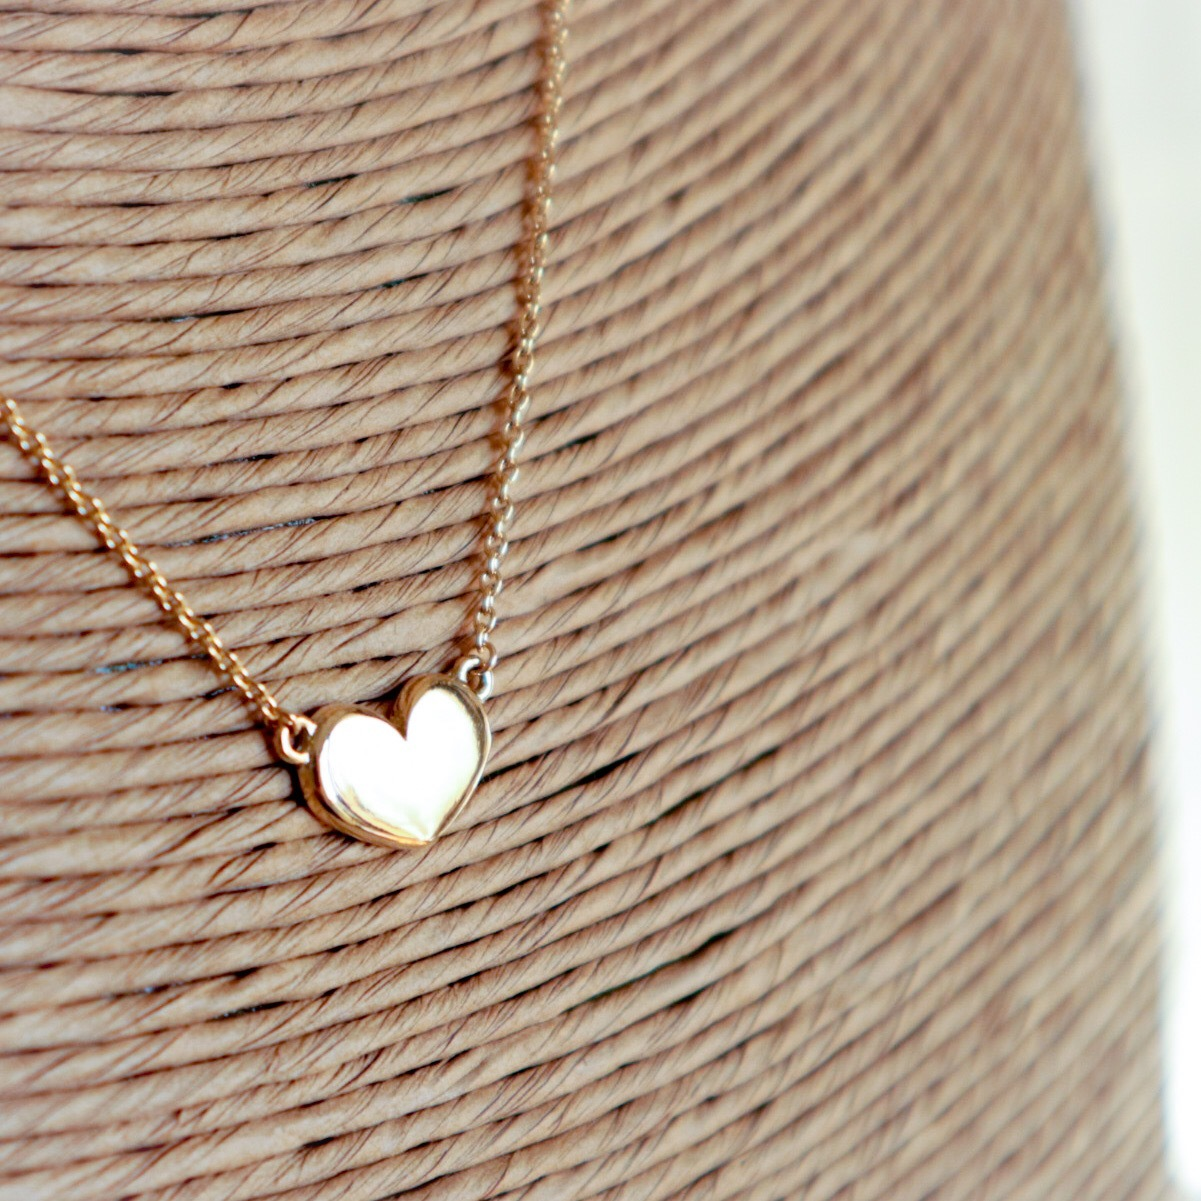 Heart Necklace (N18-23)